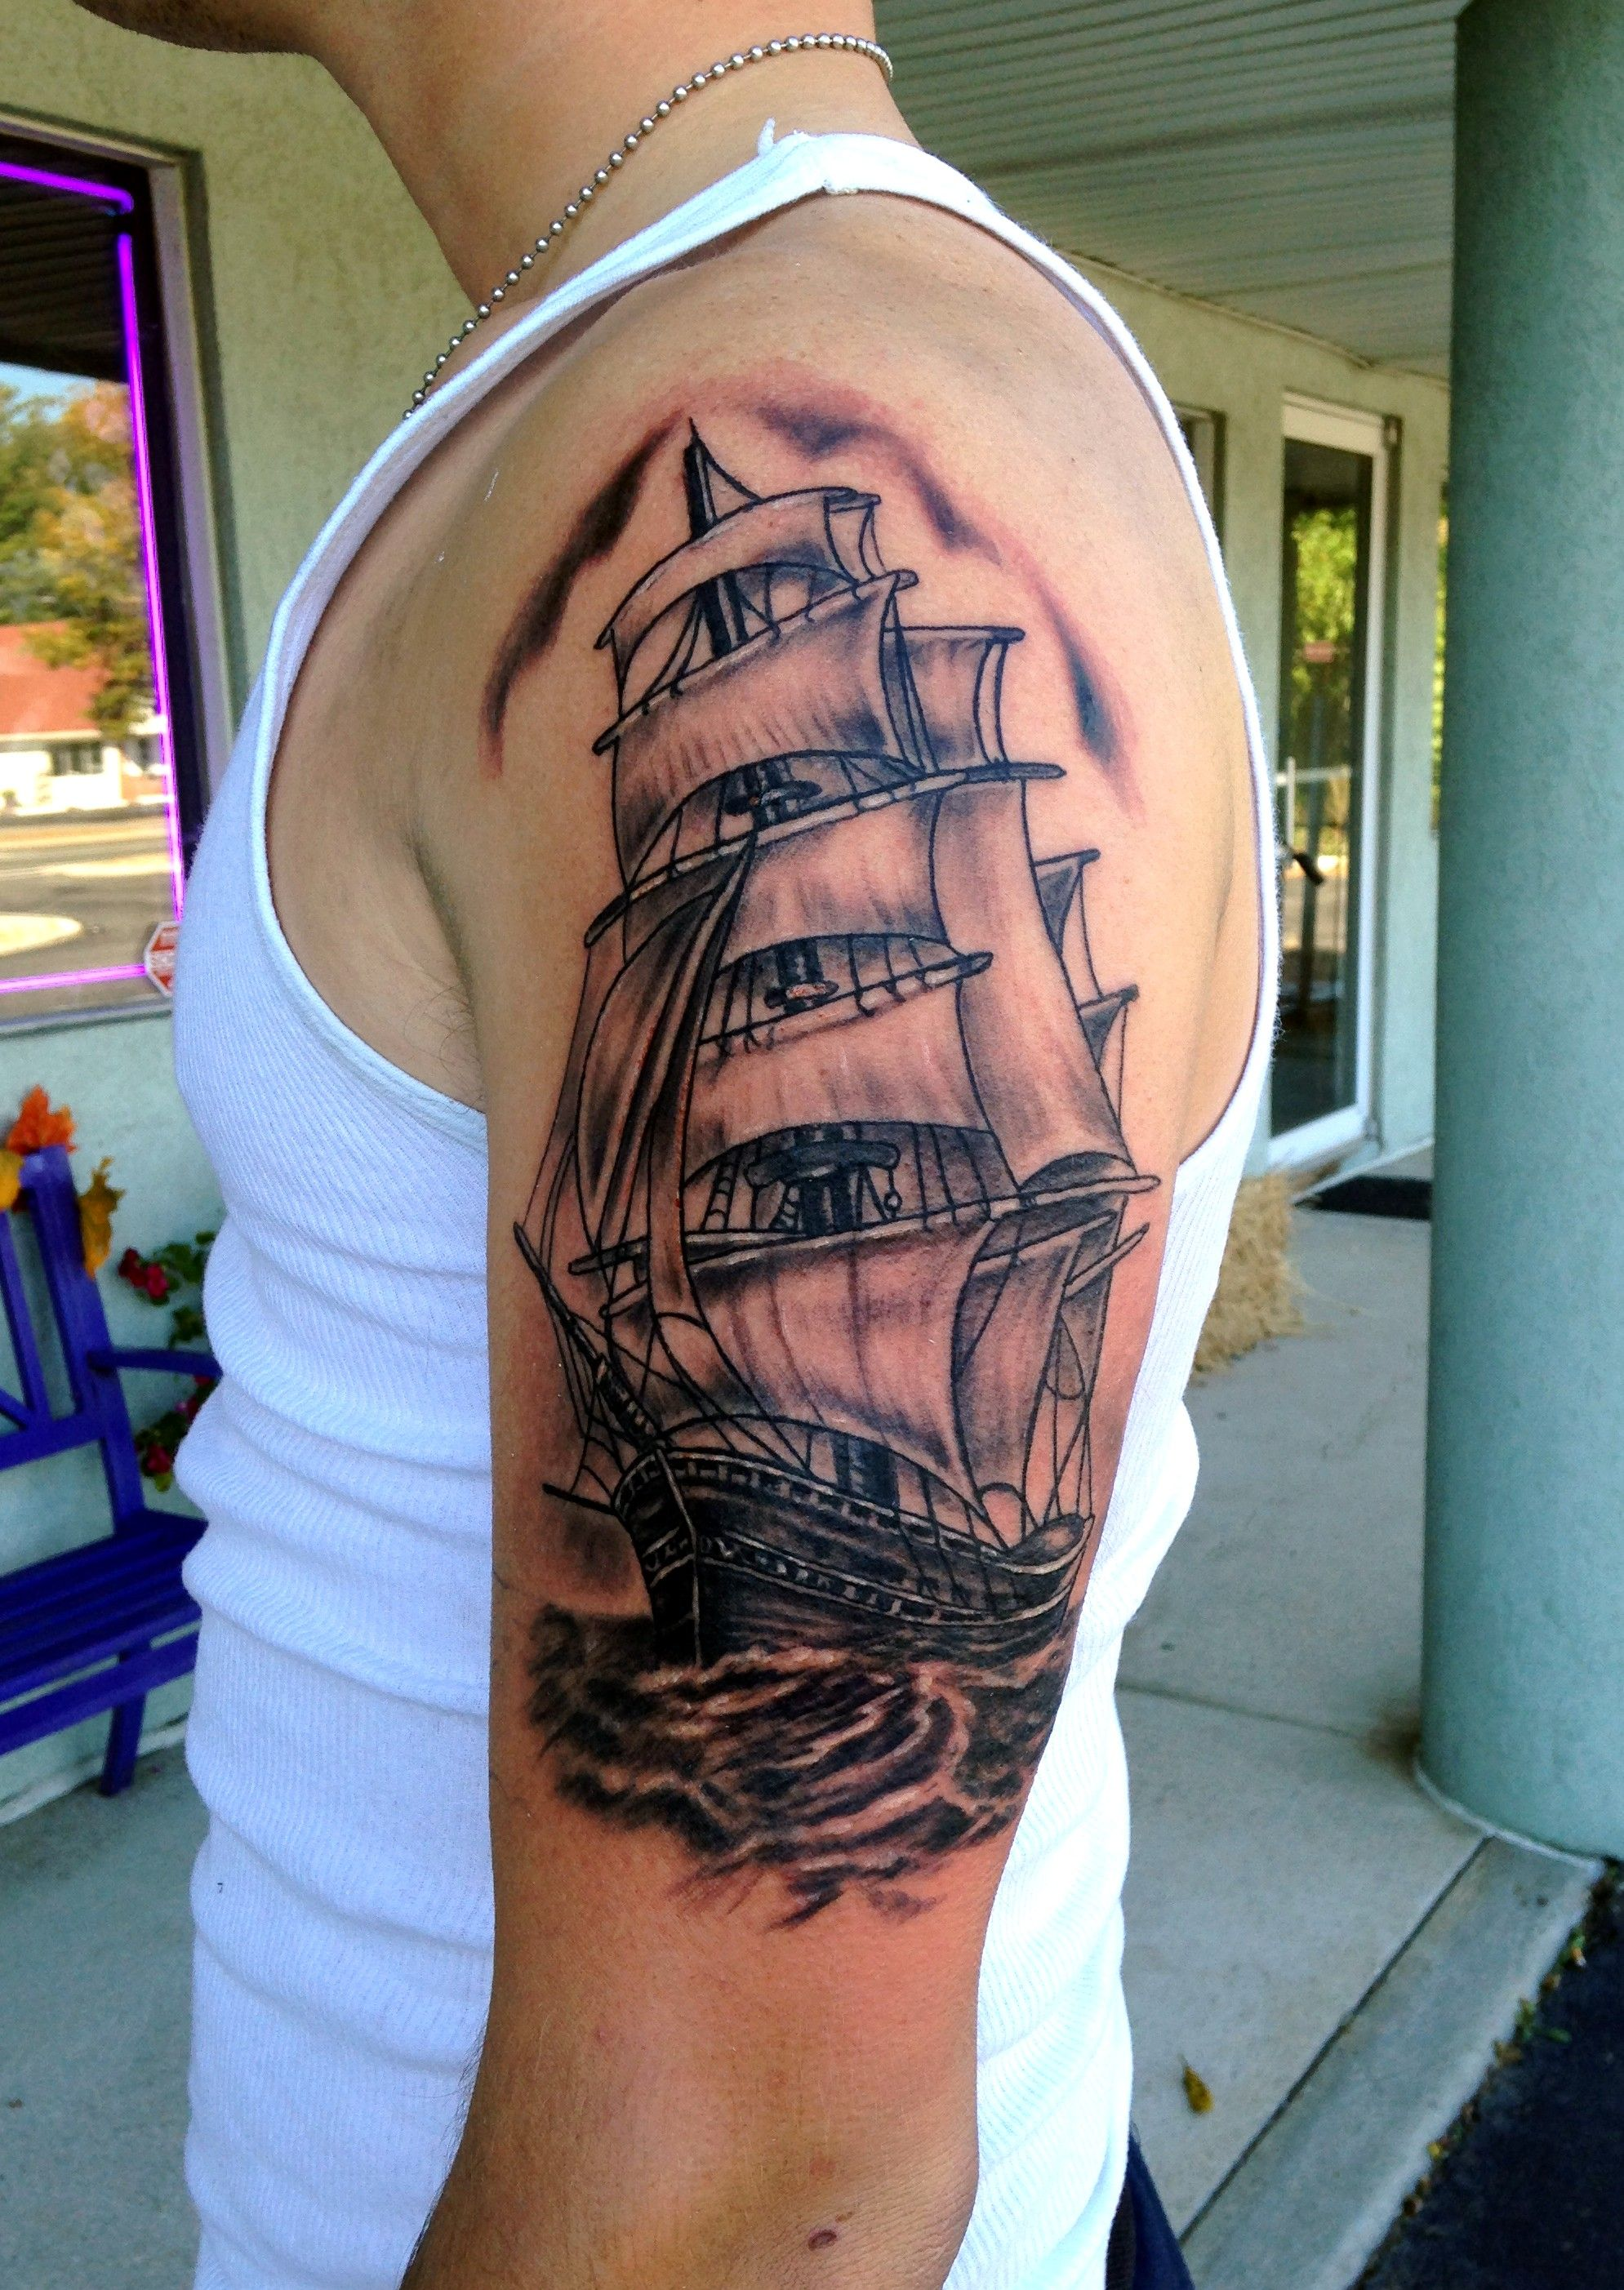 Tattoos have been in trend since ages. And many forms of art forms come into hand or other parts to give a meaningful presentation. Boat tattoo designs have been in.